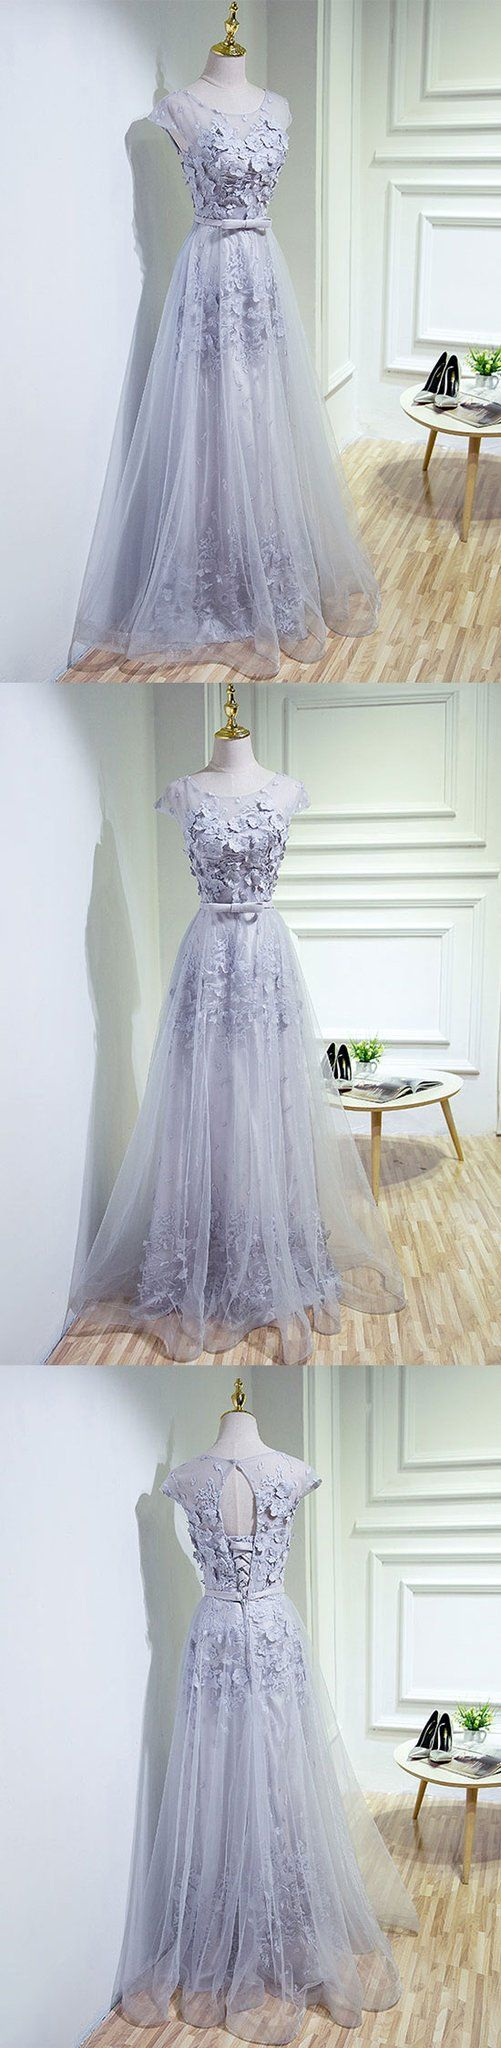 Gray lace tulle long prom dress gray evening dress prom